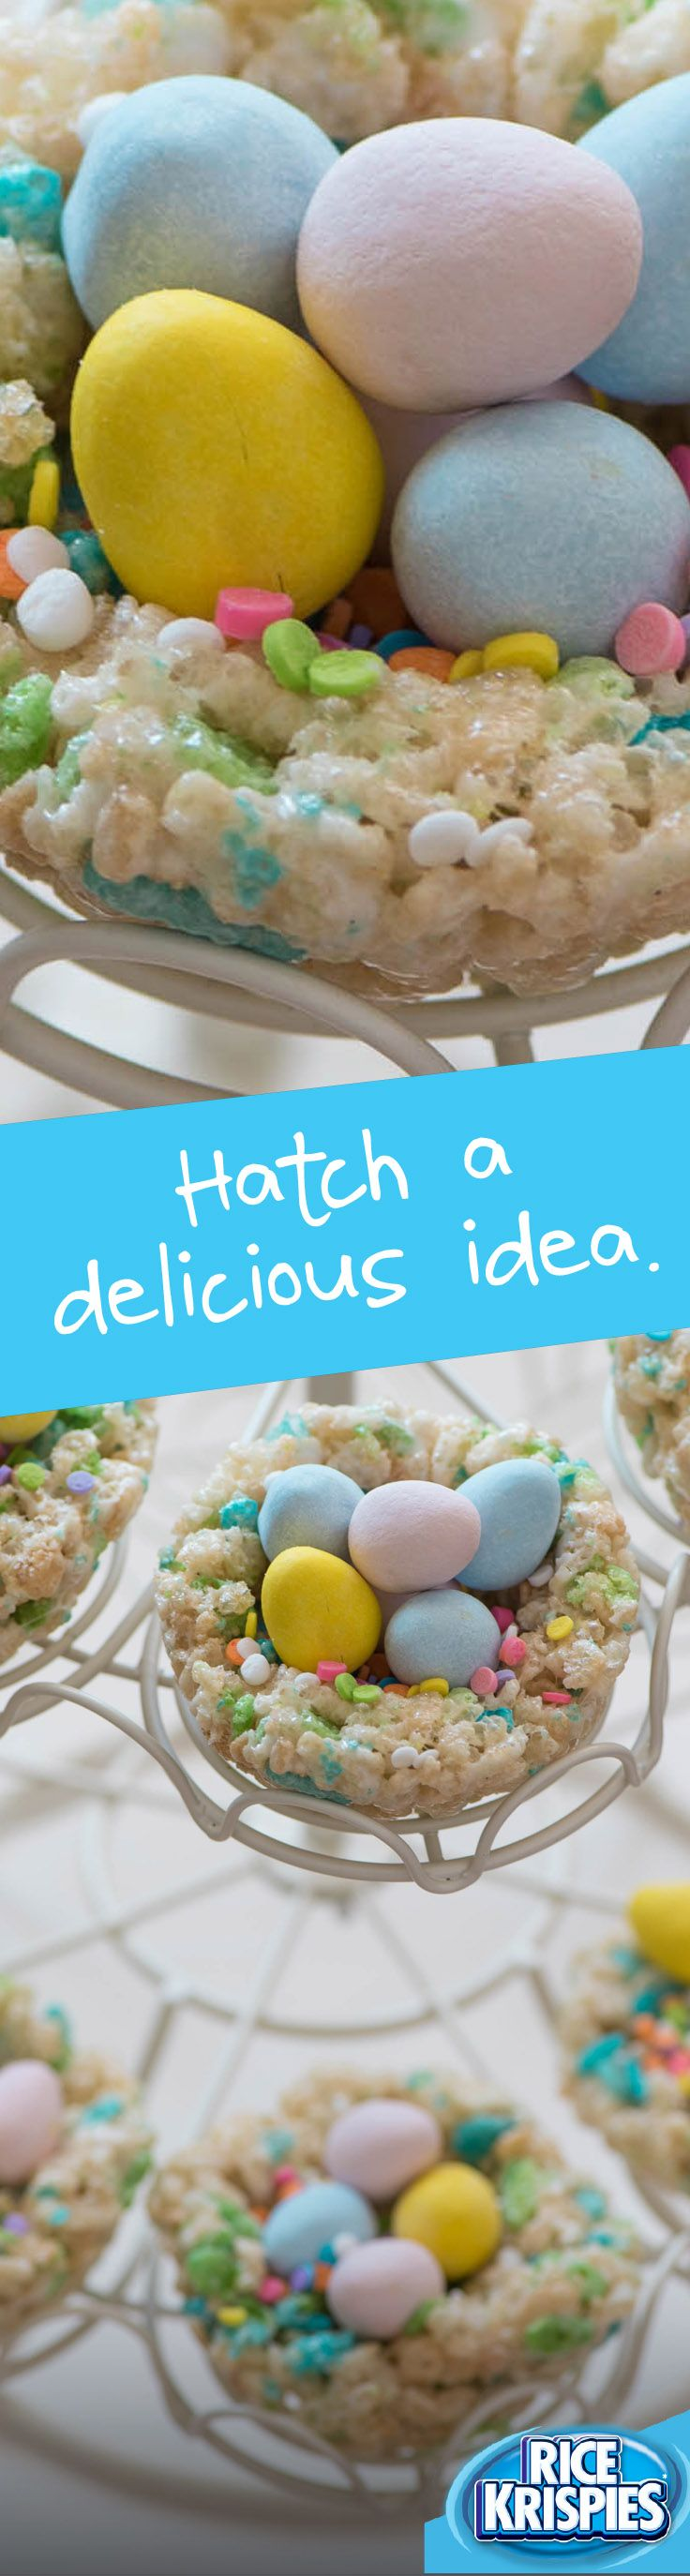 What better place to nestle chocolate eggs than an equally delicious nest? Made with Rice Krispies® Spring Edition cereal, these nests have sprinkles of sweet colour.